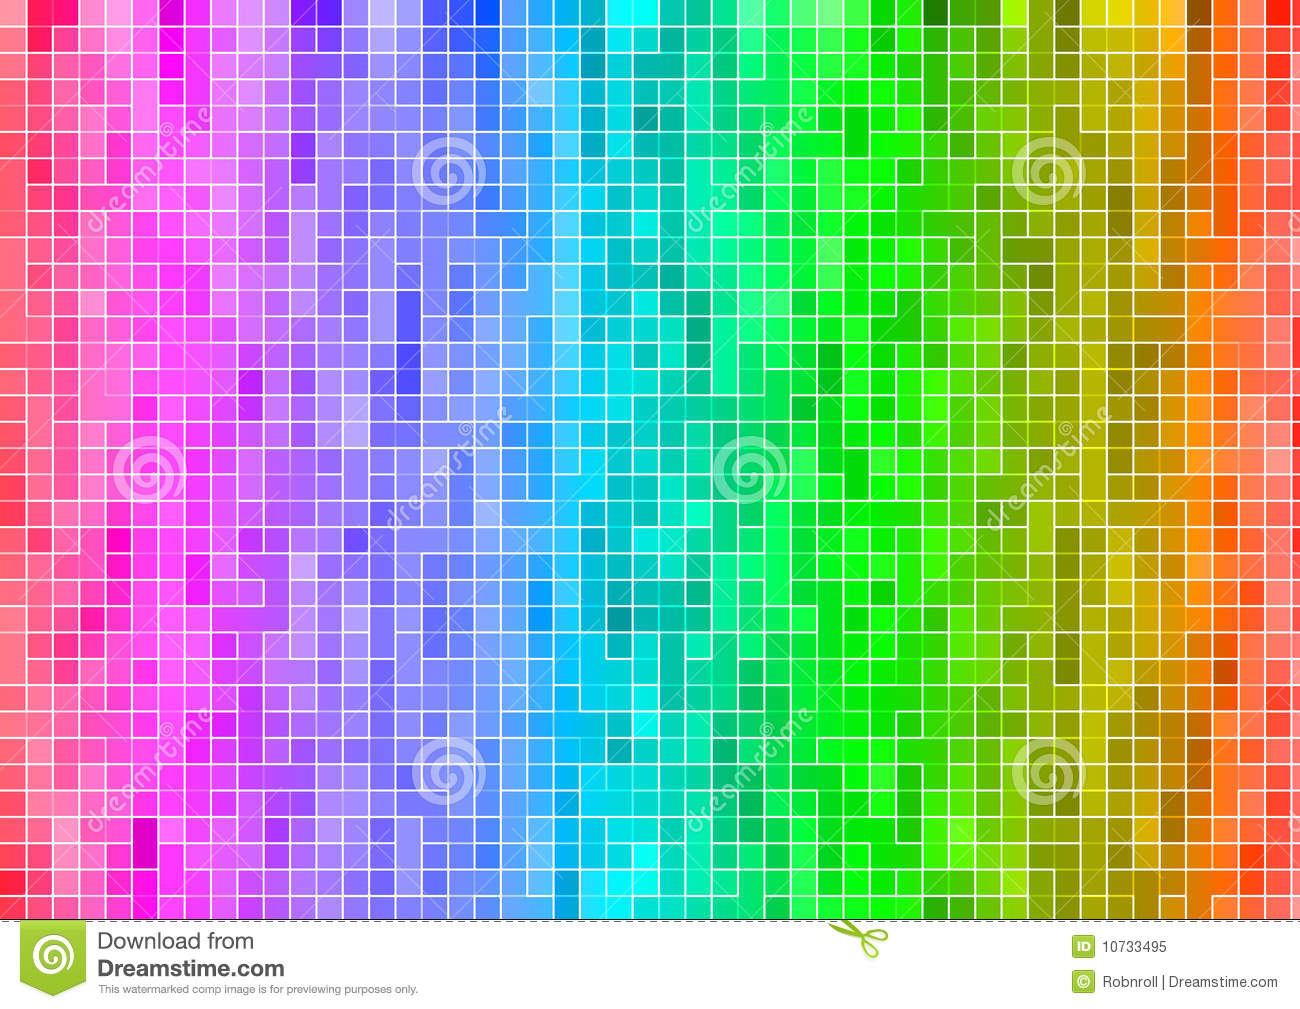 pixel rainbow wallpaper google - photo #1